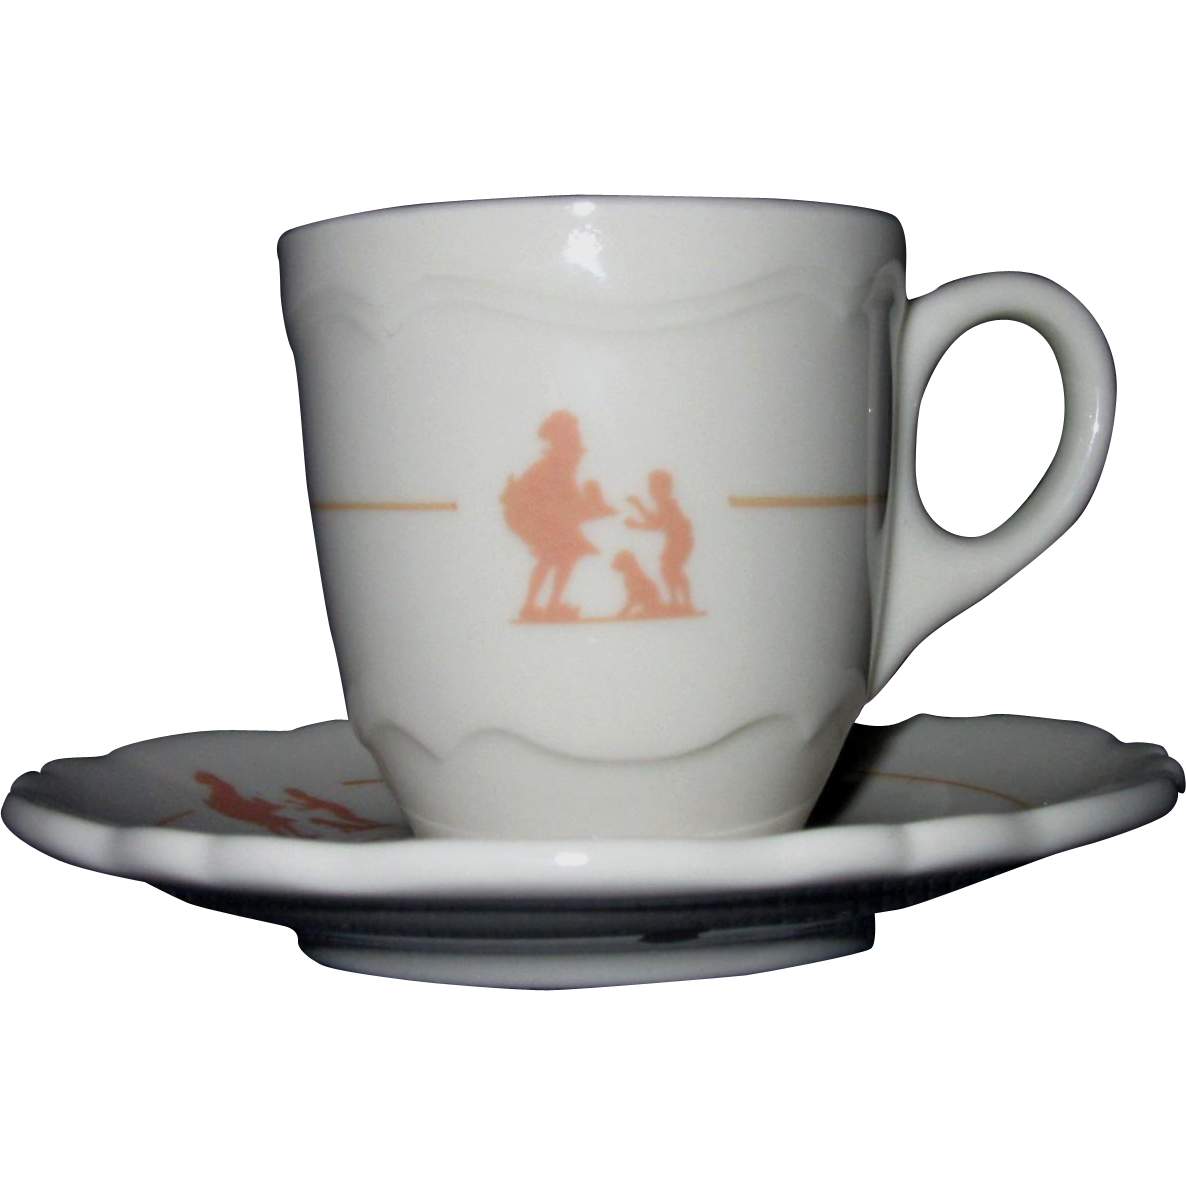 Shenango Espresso Cup and Saucer, Stenciled Howard Johnson Pieman Design (#2)